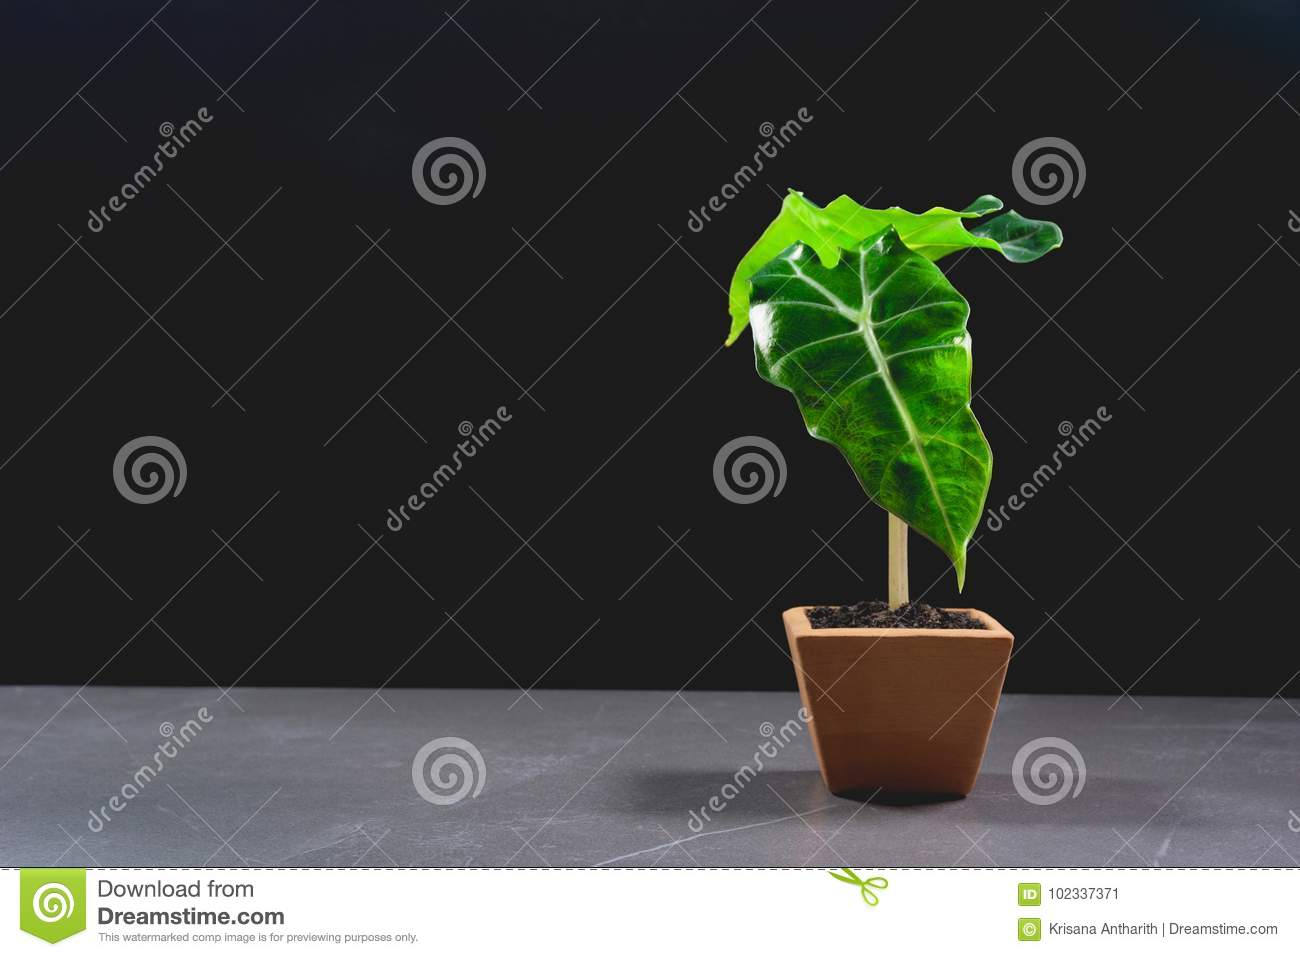 Green potted plant, trees in the pot on table